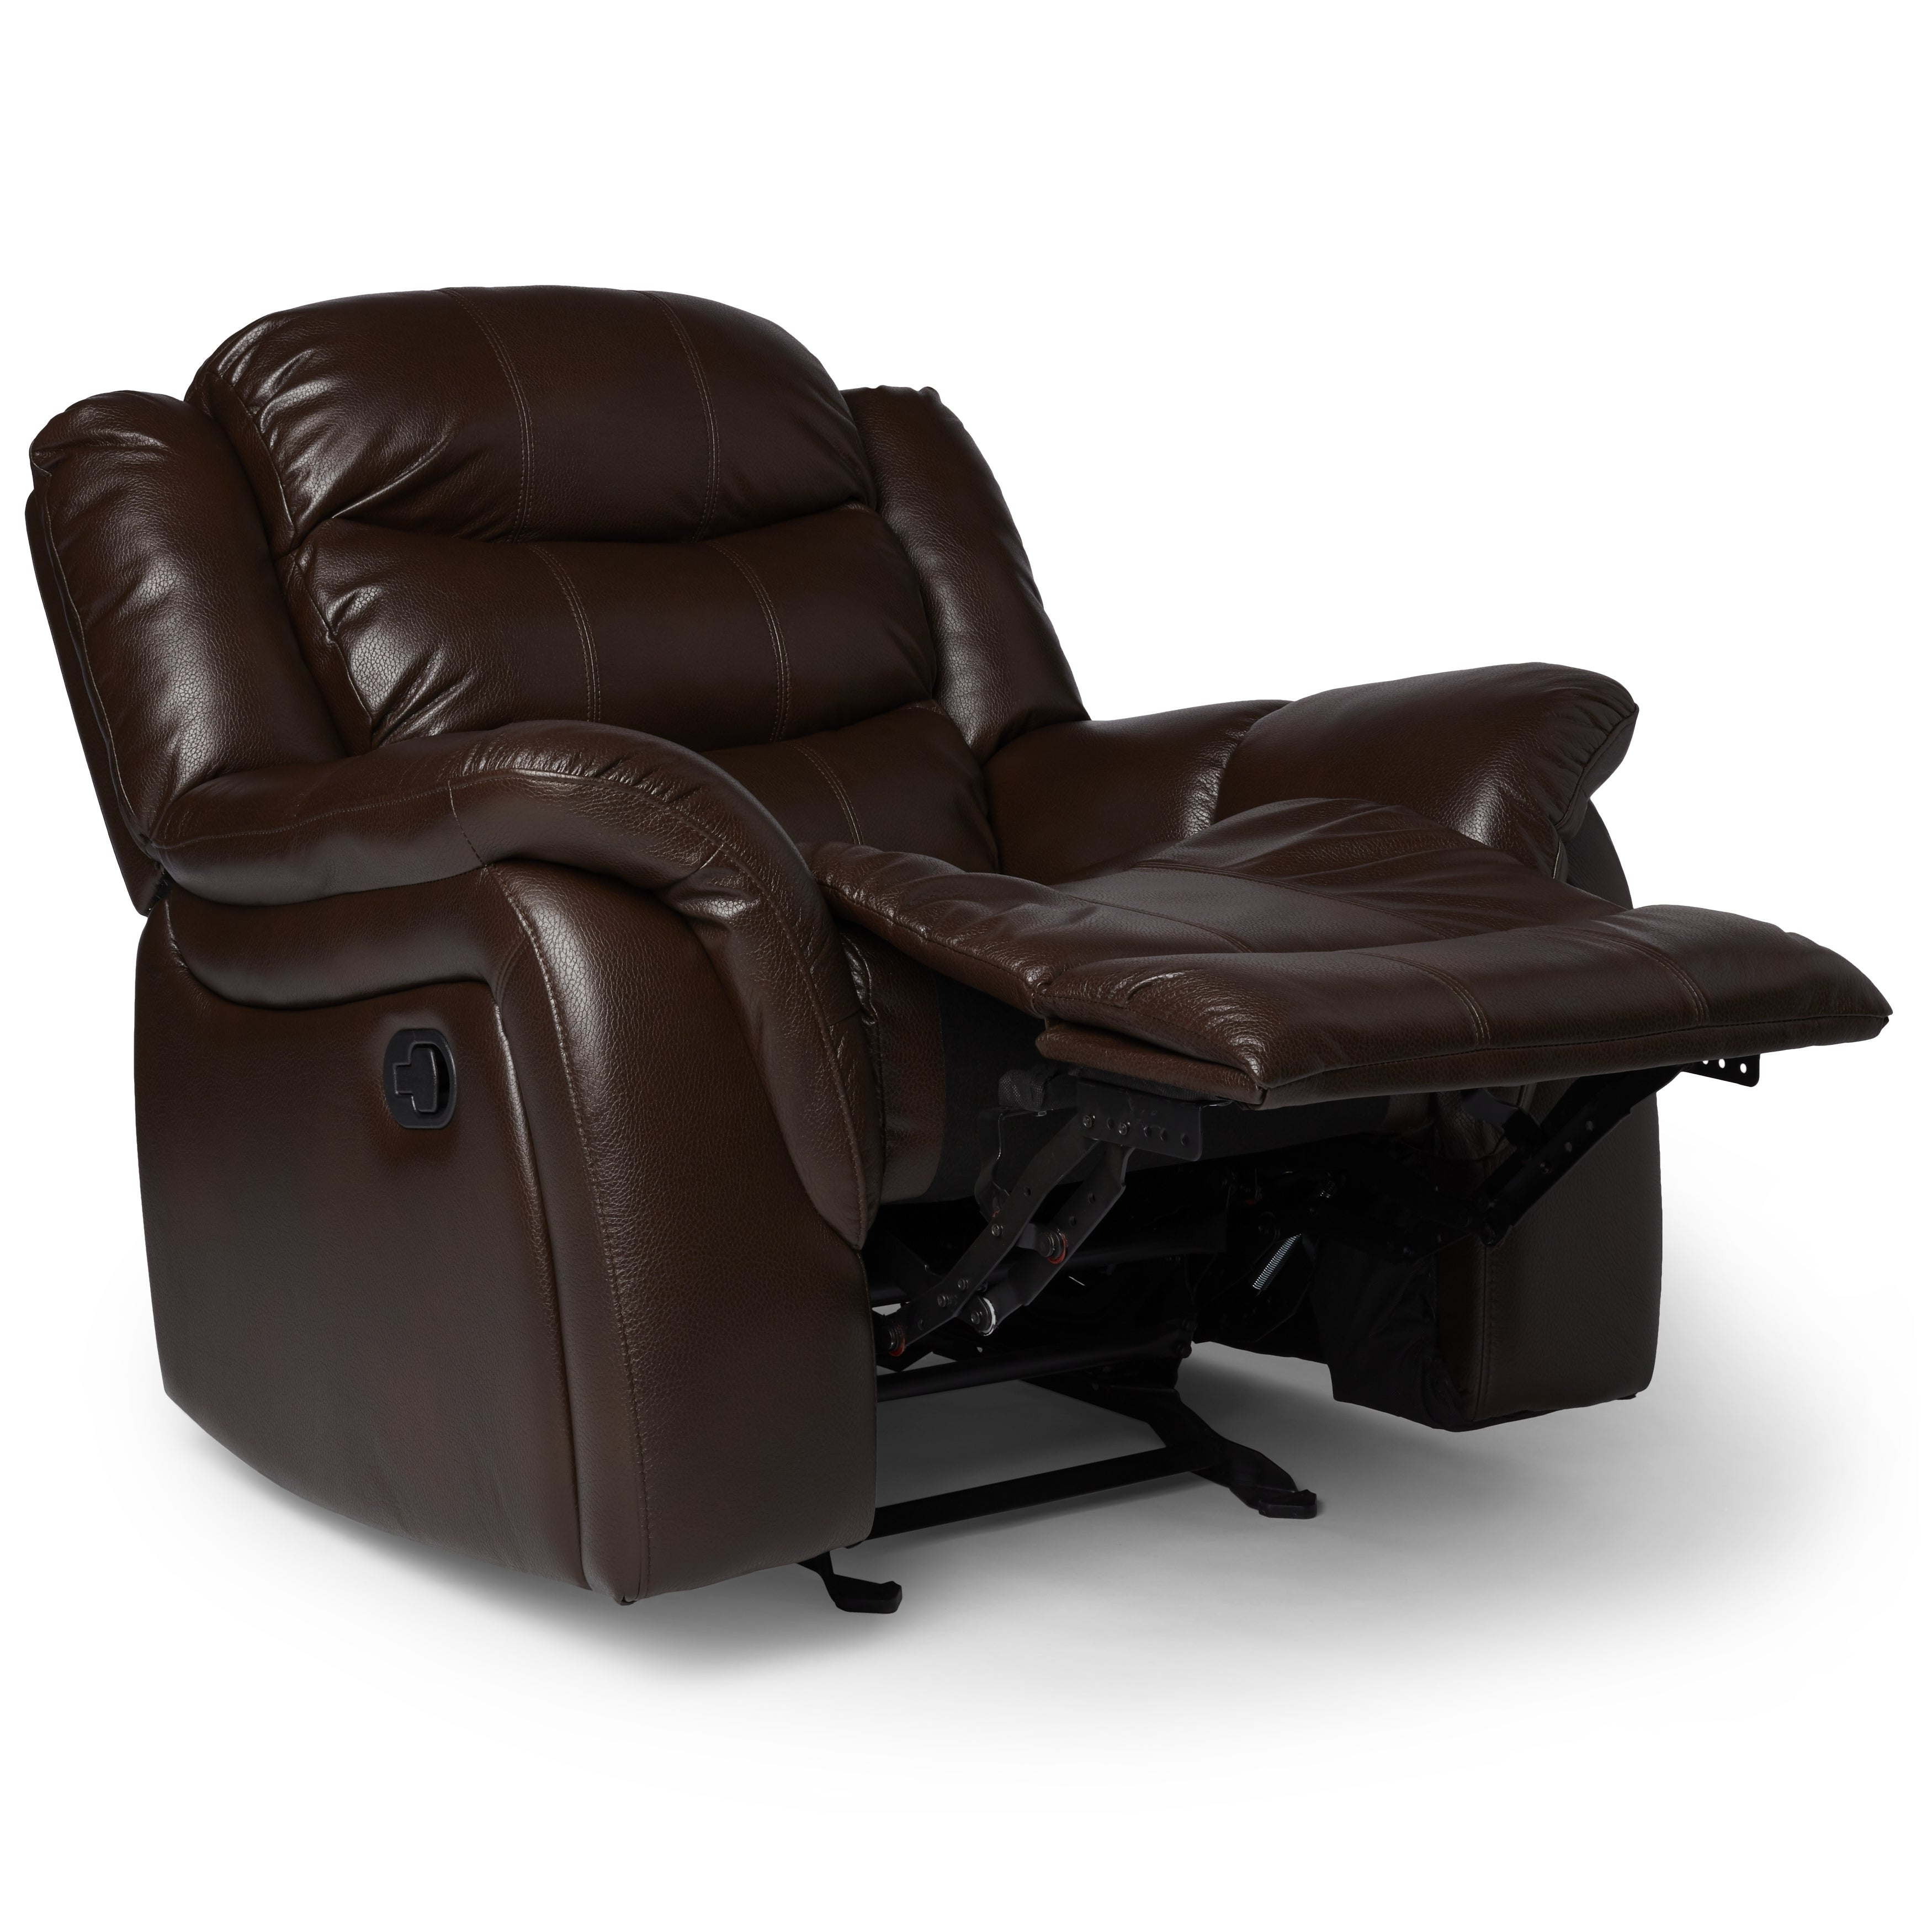 Shop Hawthorne PU Leather Glider Recliner Chair By Christopher Knight Home    On Sale   Free Shipping Today   Overstock.com   10673334